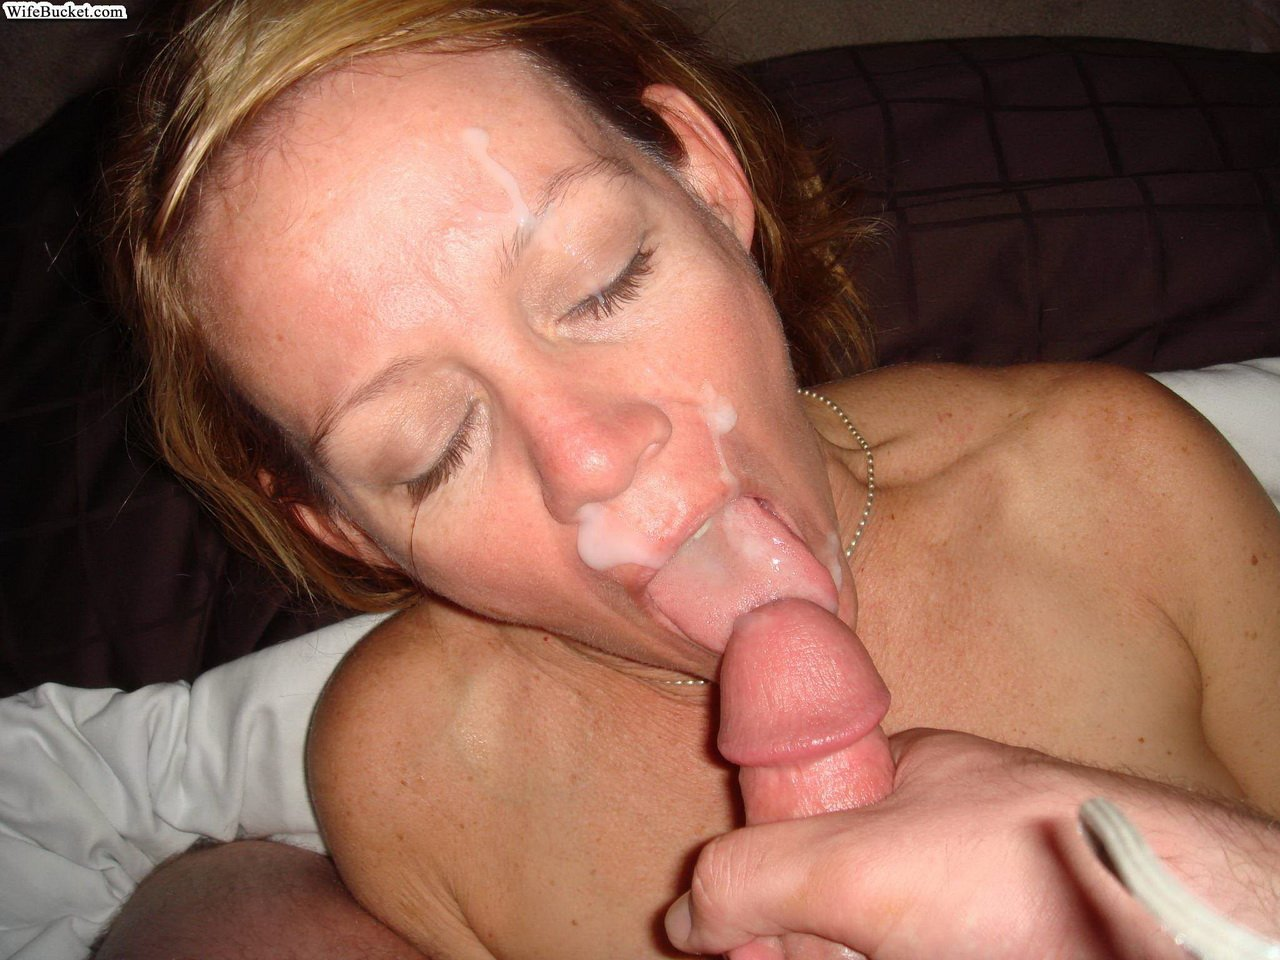 Remarkable, amateur porn site web wife share your